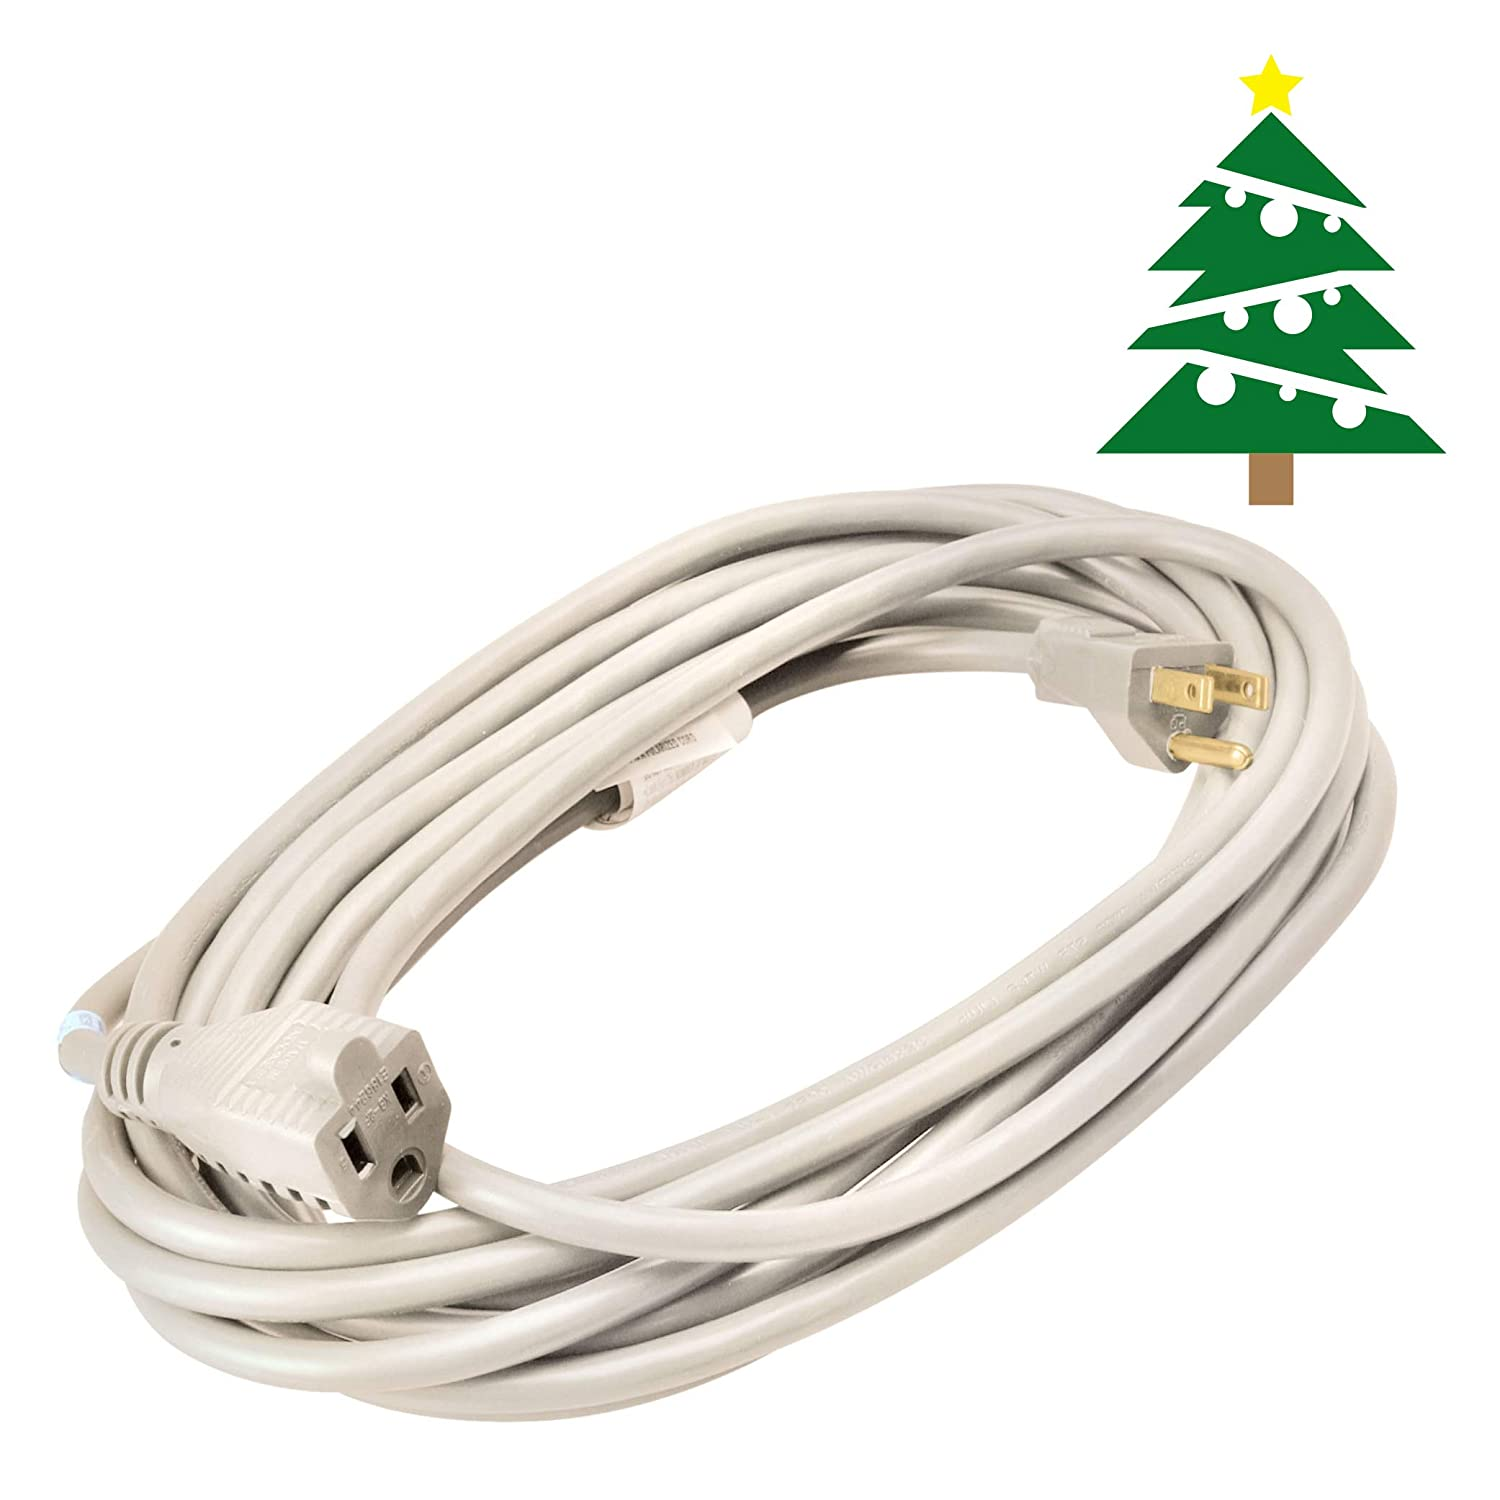 Coleman Cable Outdoor Extension Cord In White 20 Ft 16 Gauge Fixture Wiring As Well A Light Wires Besides Electrical